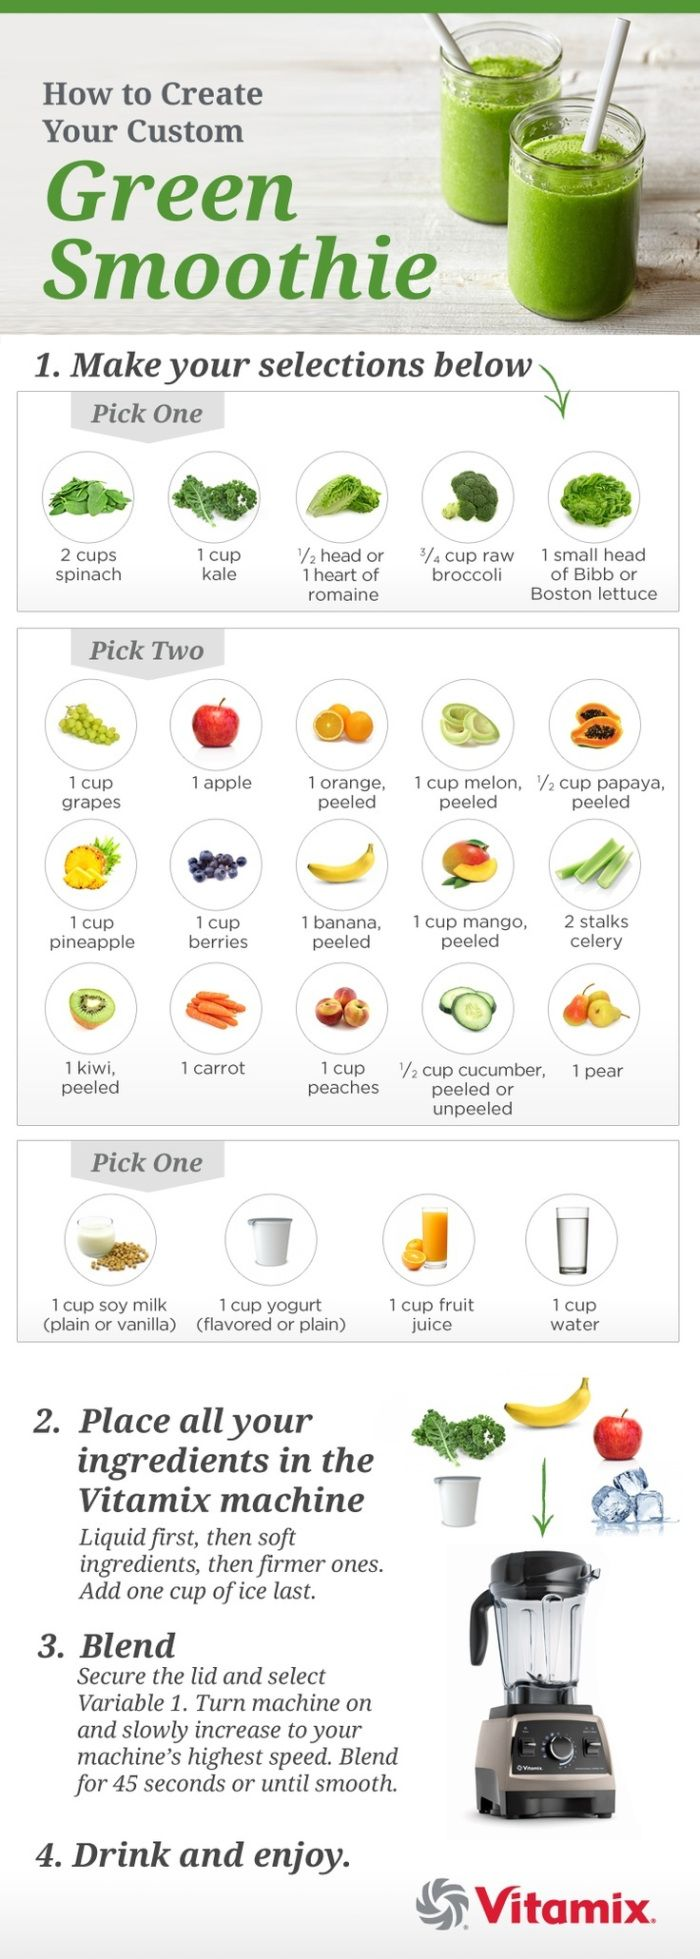 Green Smoothie Guide #Vitamix Get FREE Shipping at Vitamix.com with Code 06-006499